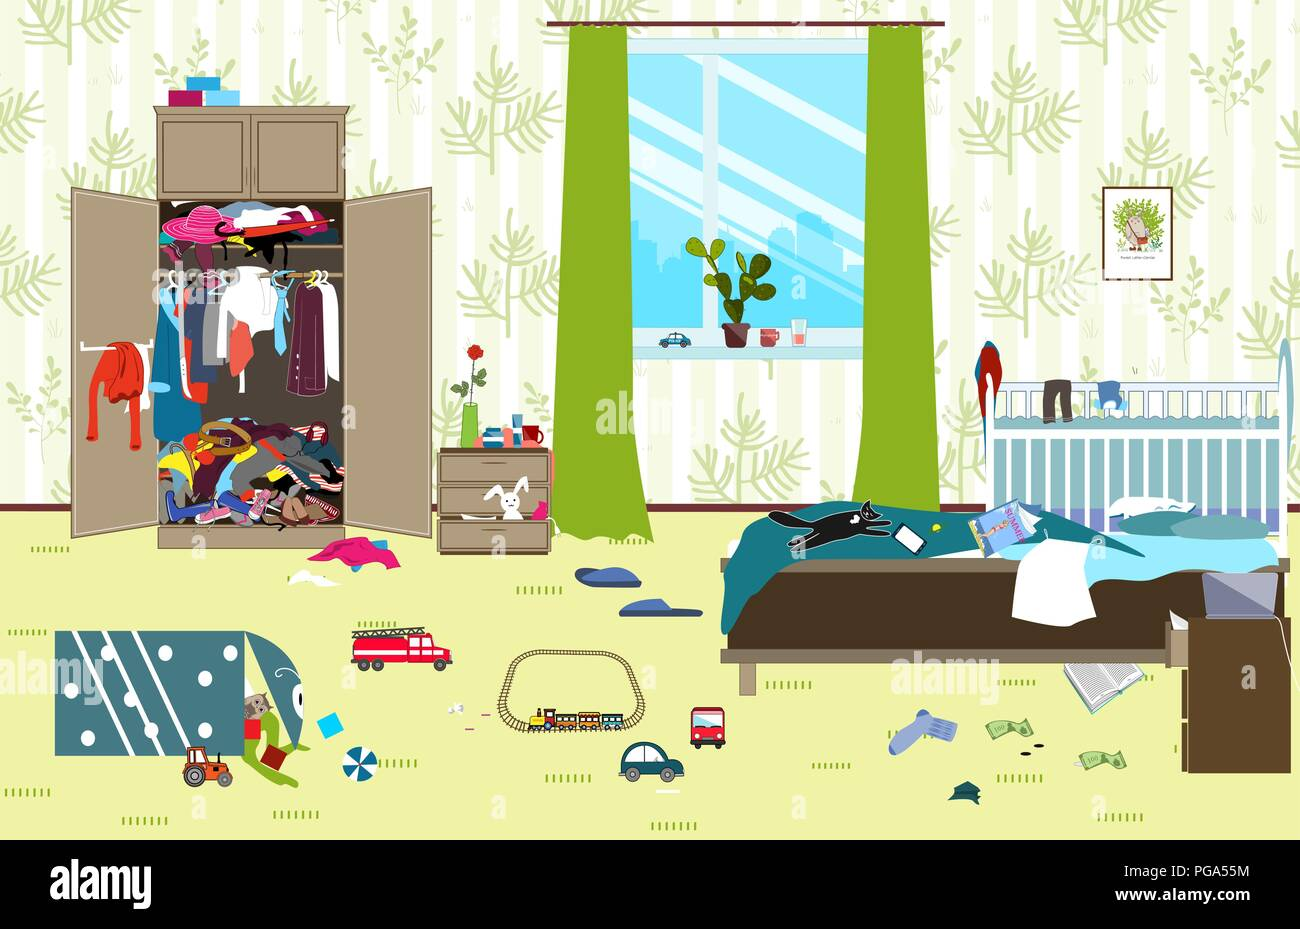 Messy room where young family with little baby lives. Untidy room. Cartoon mess in the room. Uncollected toys, things. Cleaning vector illustration. - Stock Vector